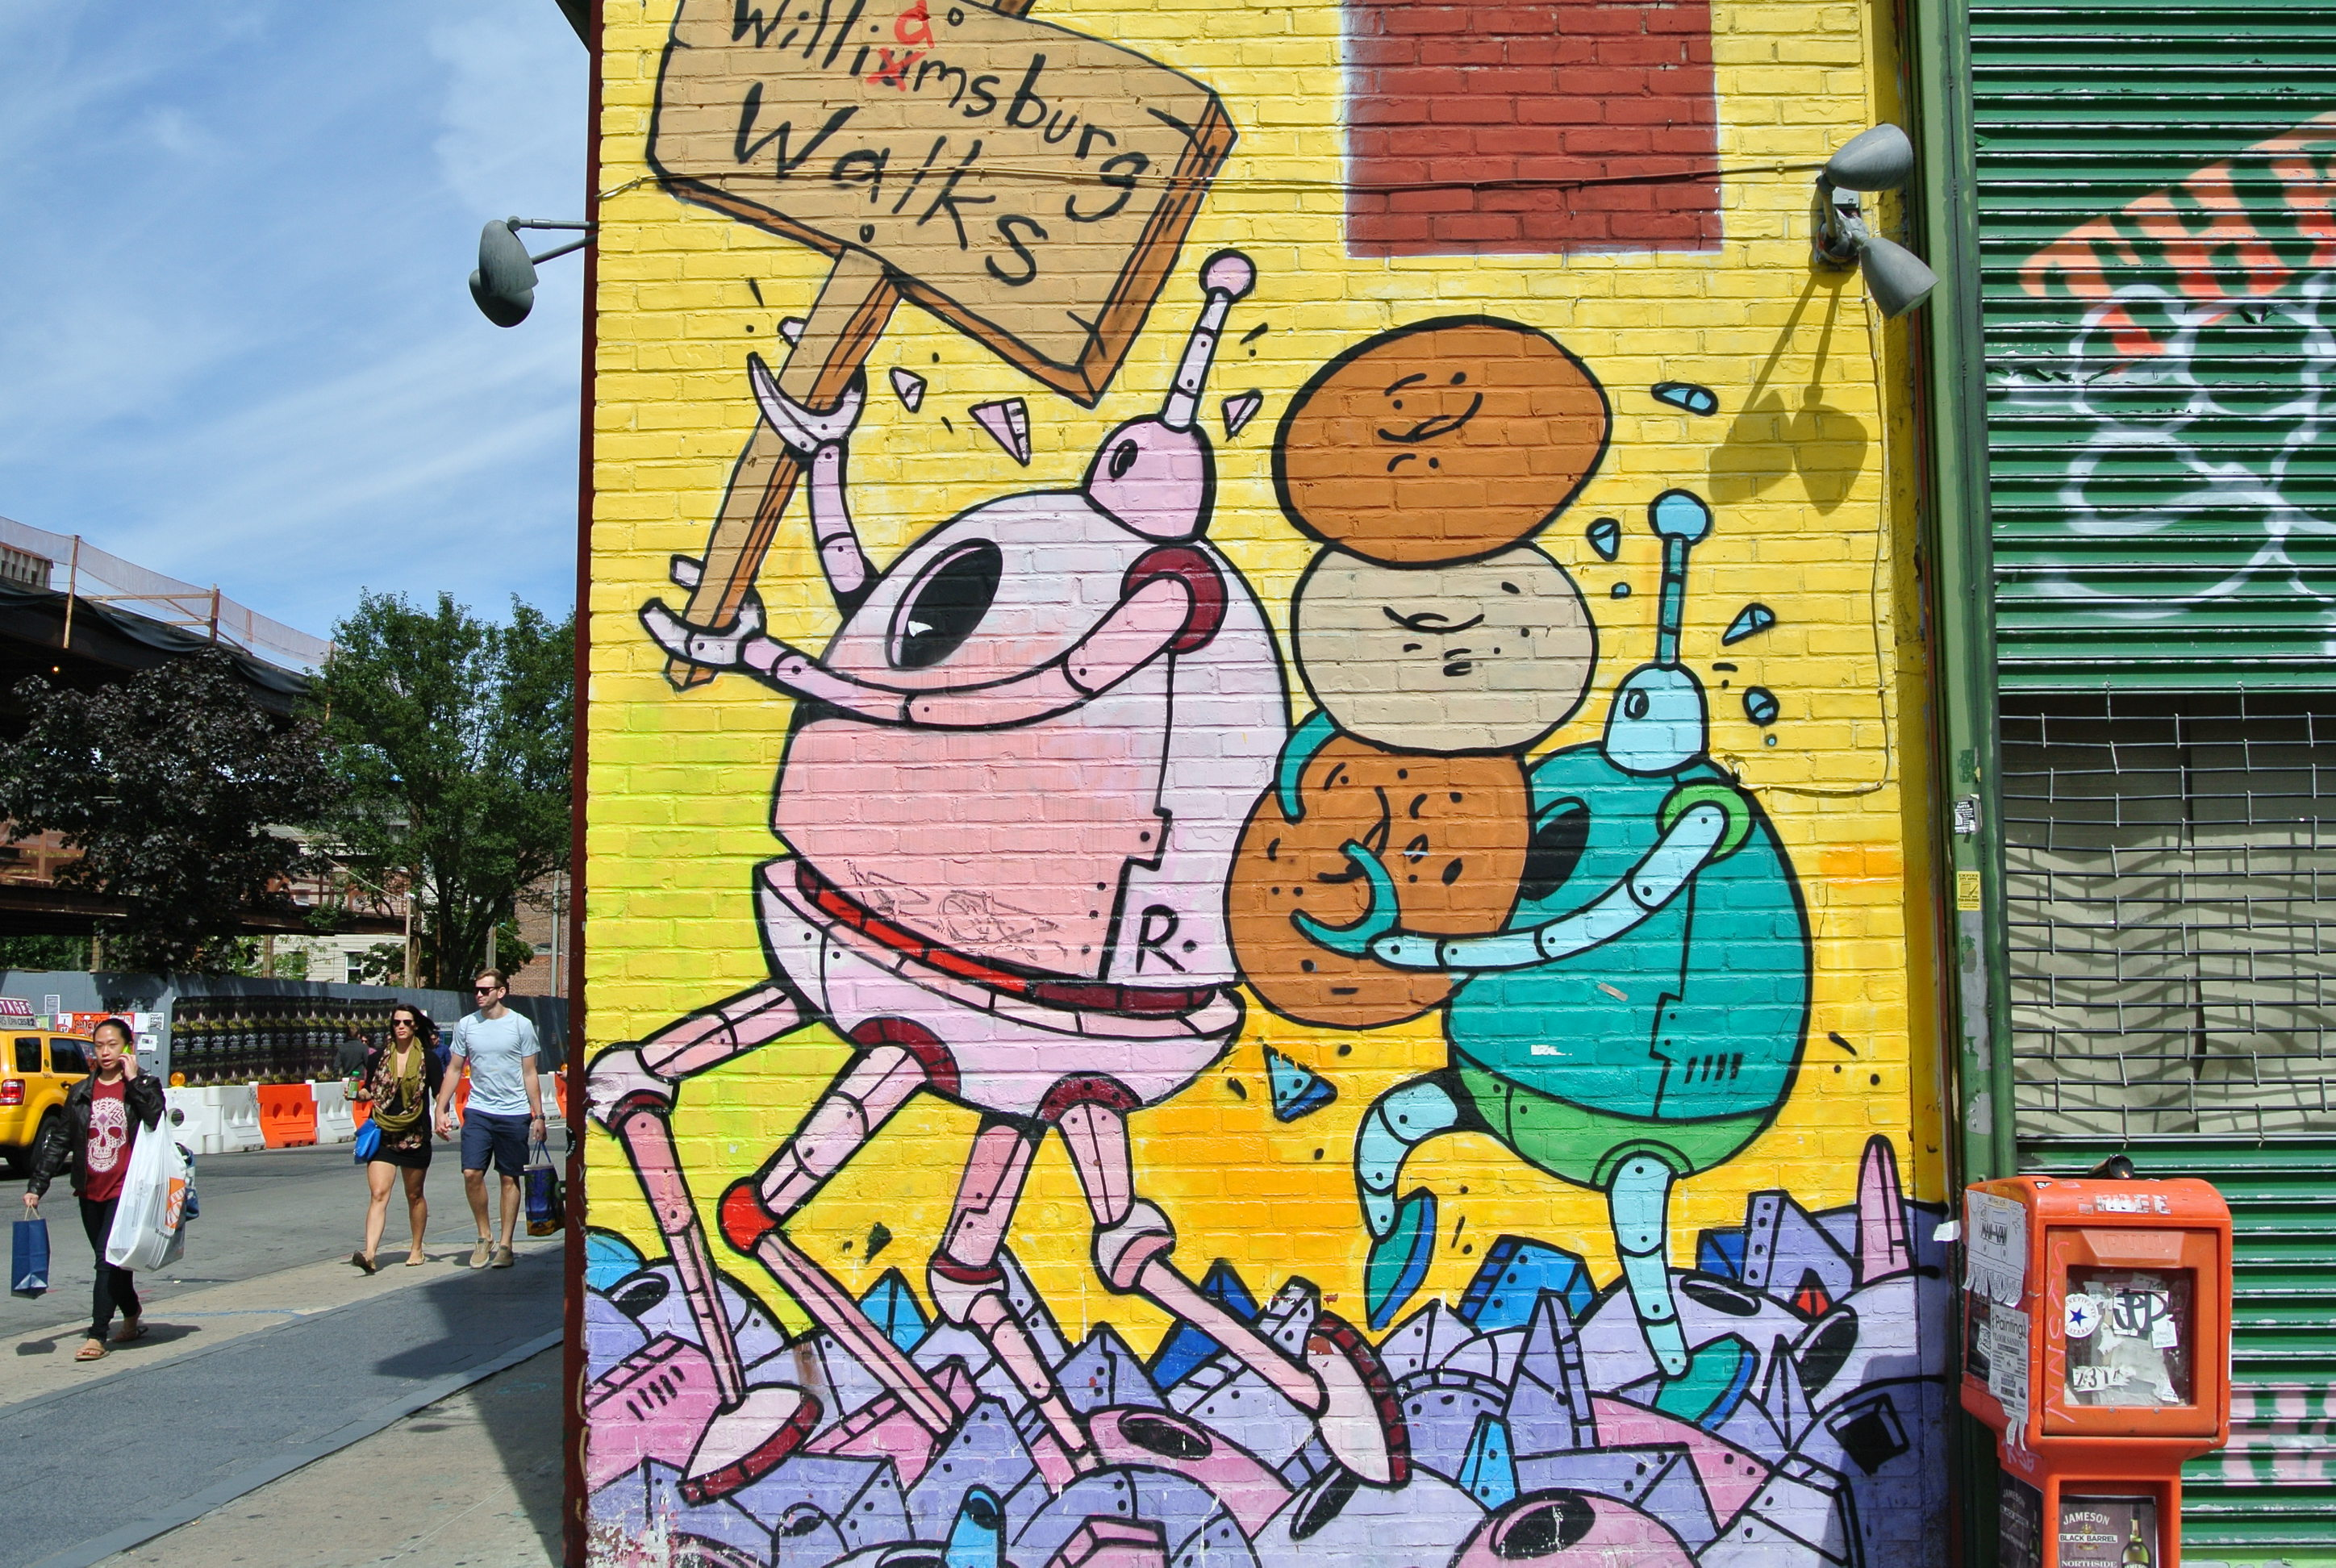 Philly Travels: Langston Clement Finds Some Amazing Street Art in ...